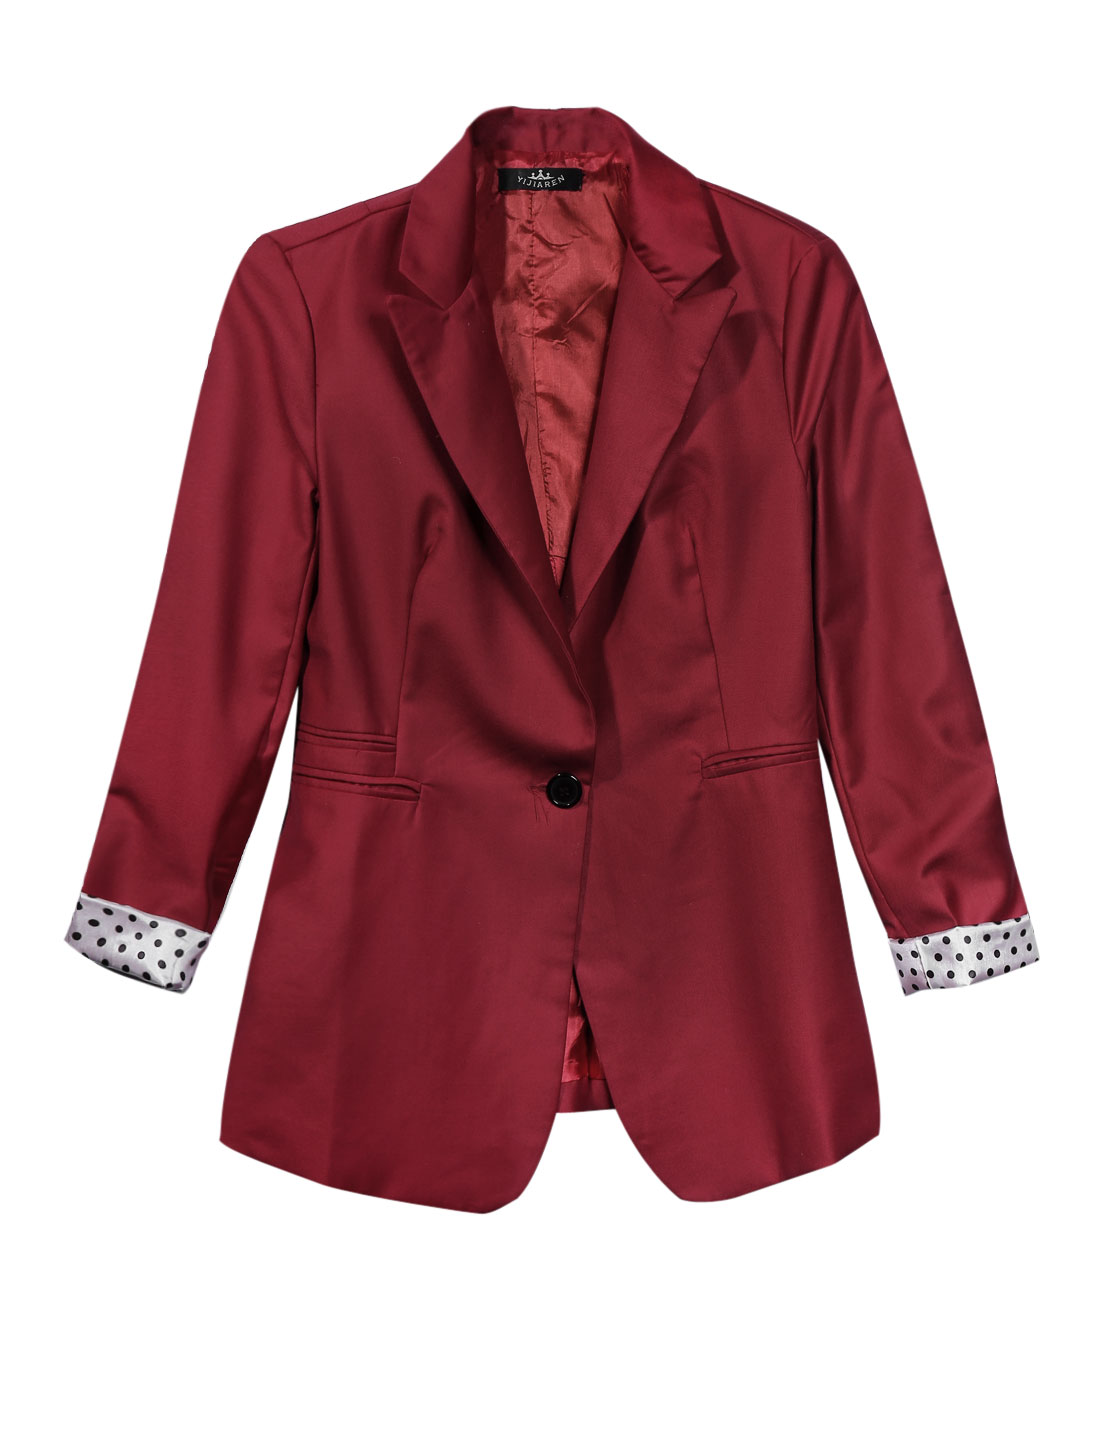 Lady Peaked Lapel One Button Closure Leisure Jacket Burgundy M